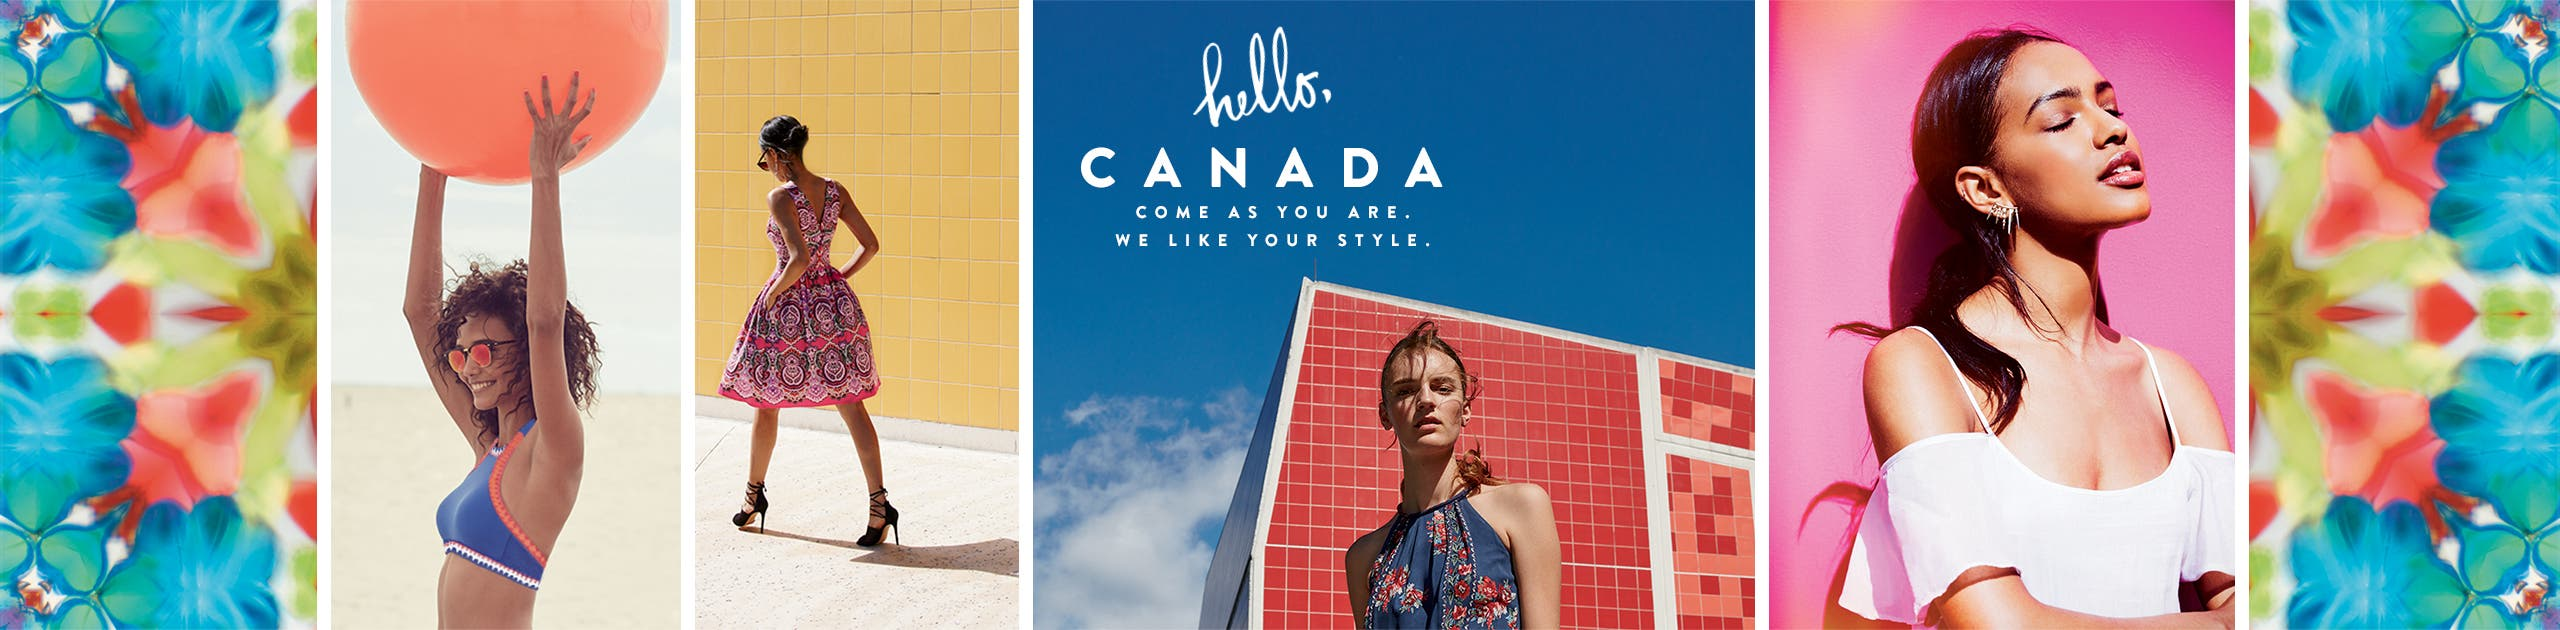 Hello, Canada. Come as you are. We like your style.